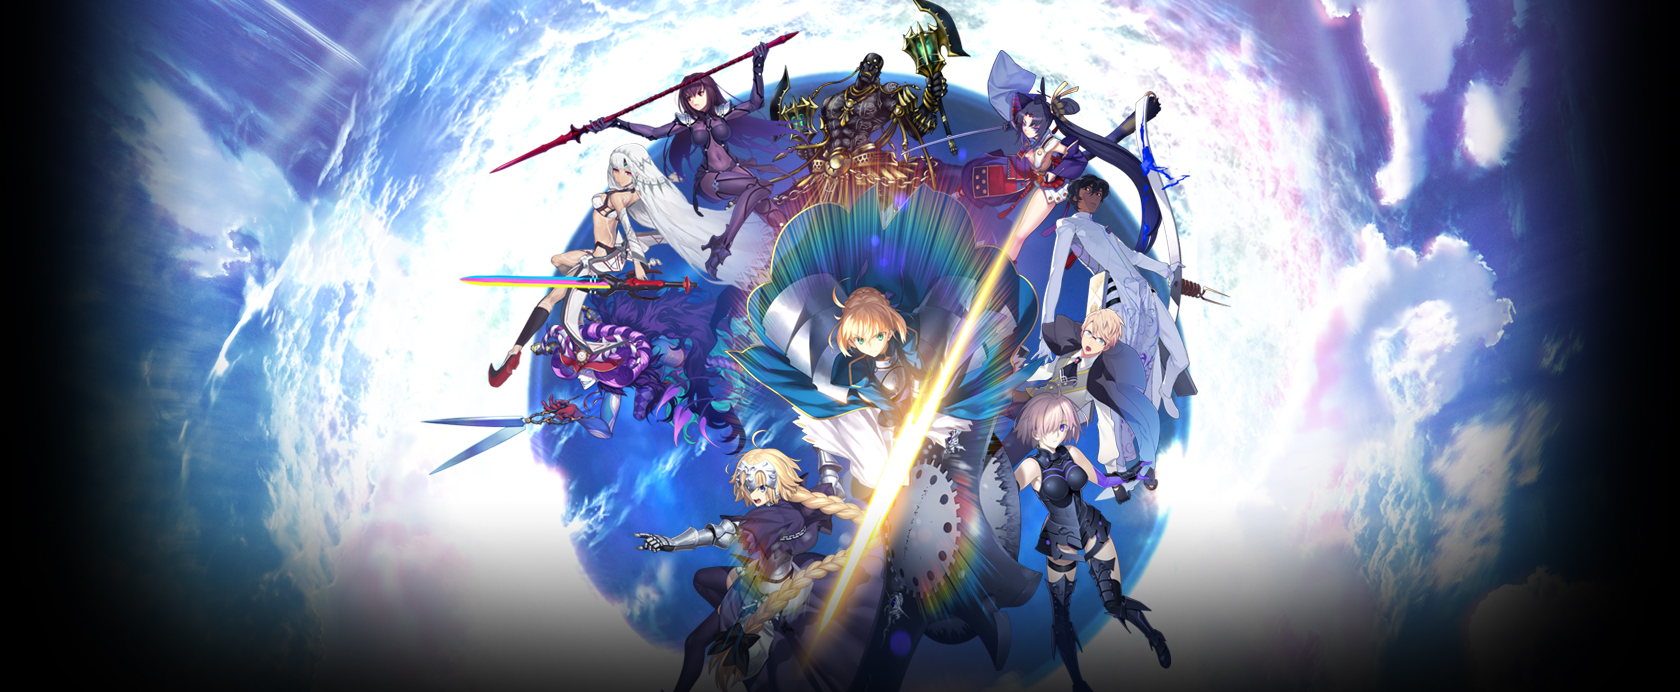 Fate Grand Order on PC - Hero